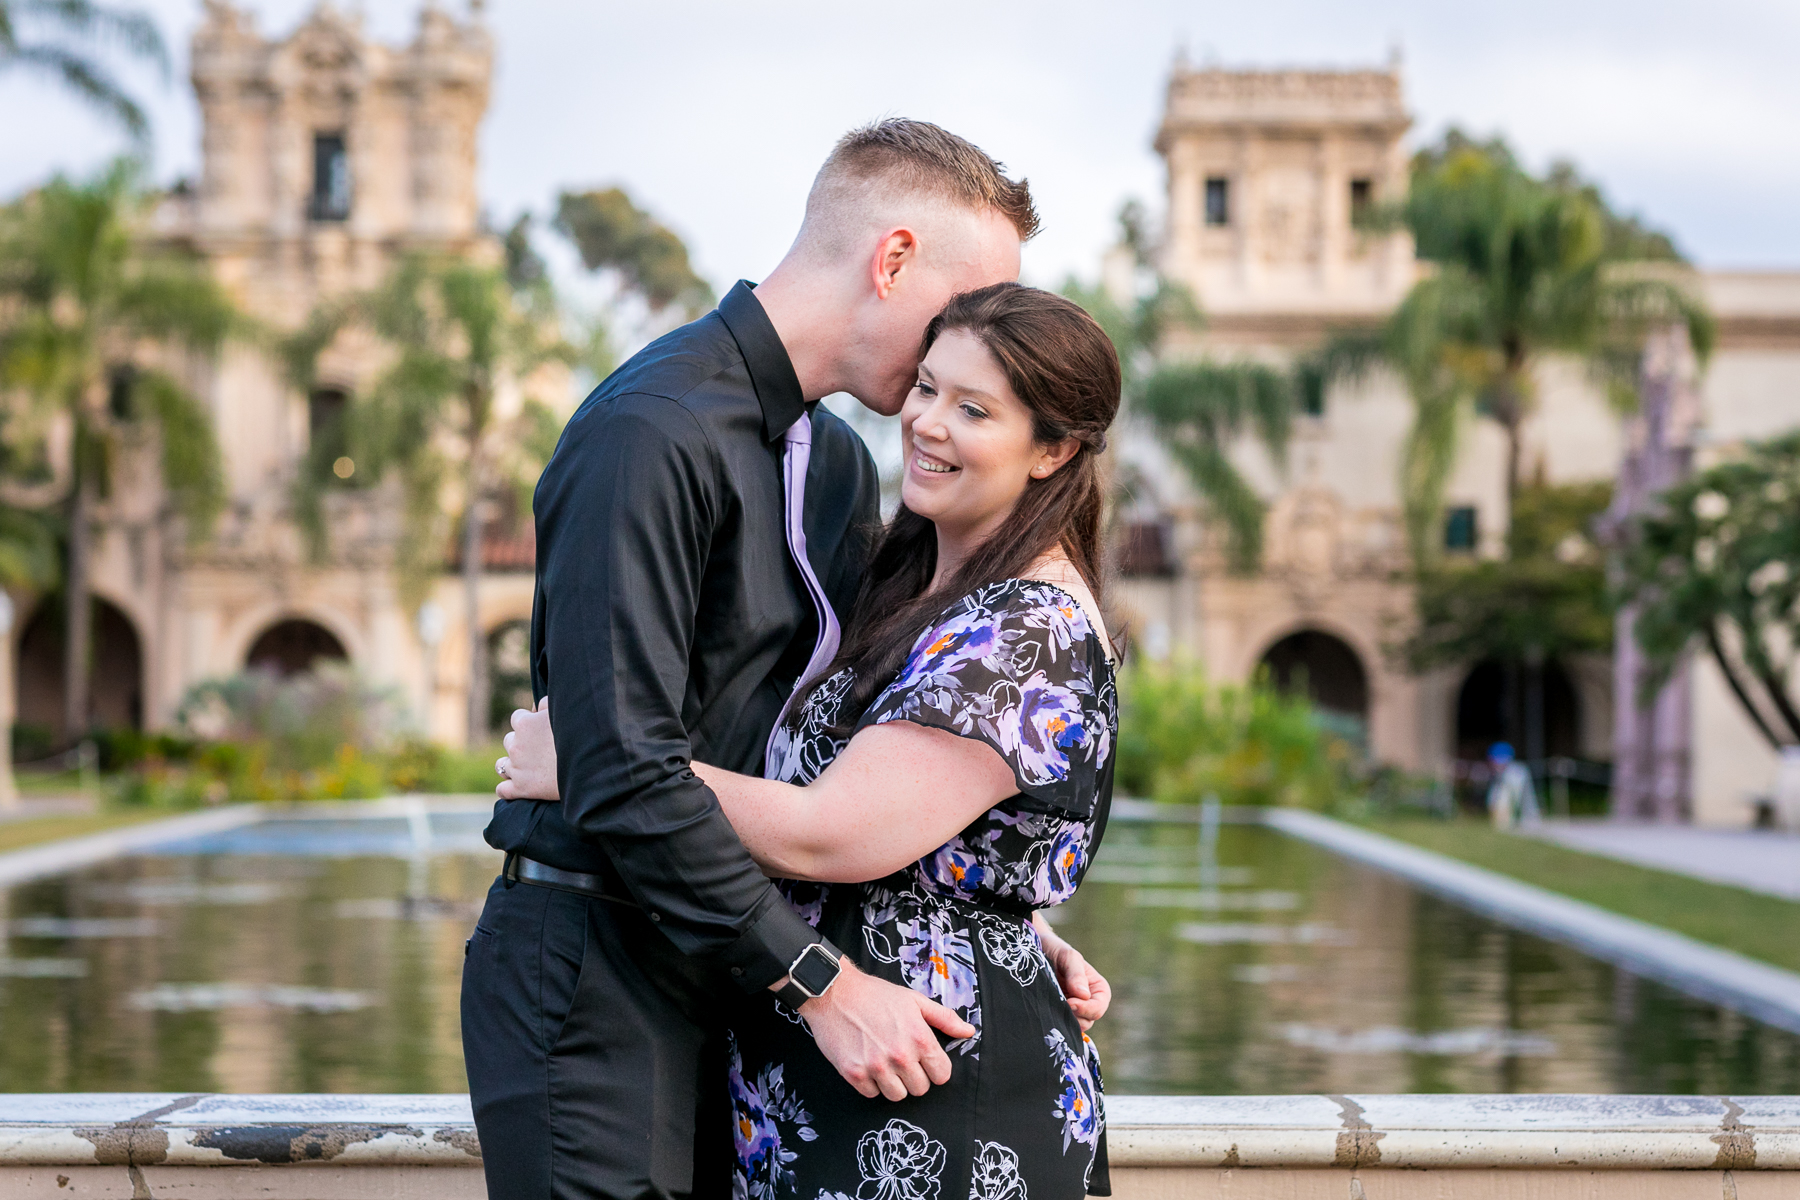 guy whispers sweets nothings into girl's ear during balboa park engagement session